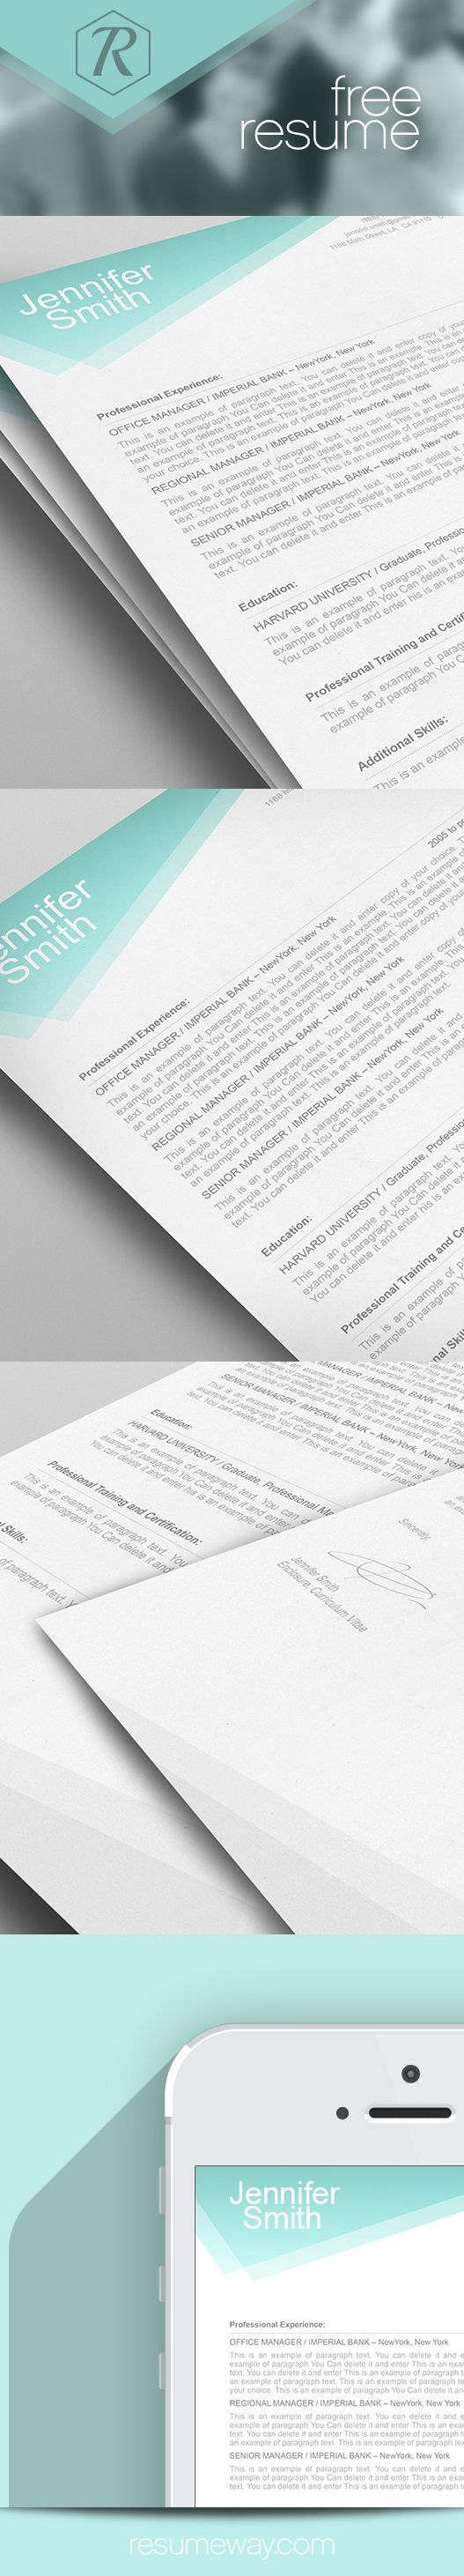 best ideas about resume resume template resume template 1100020 premium line of resume cover letter templates edit